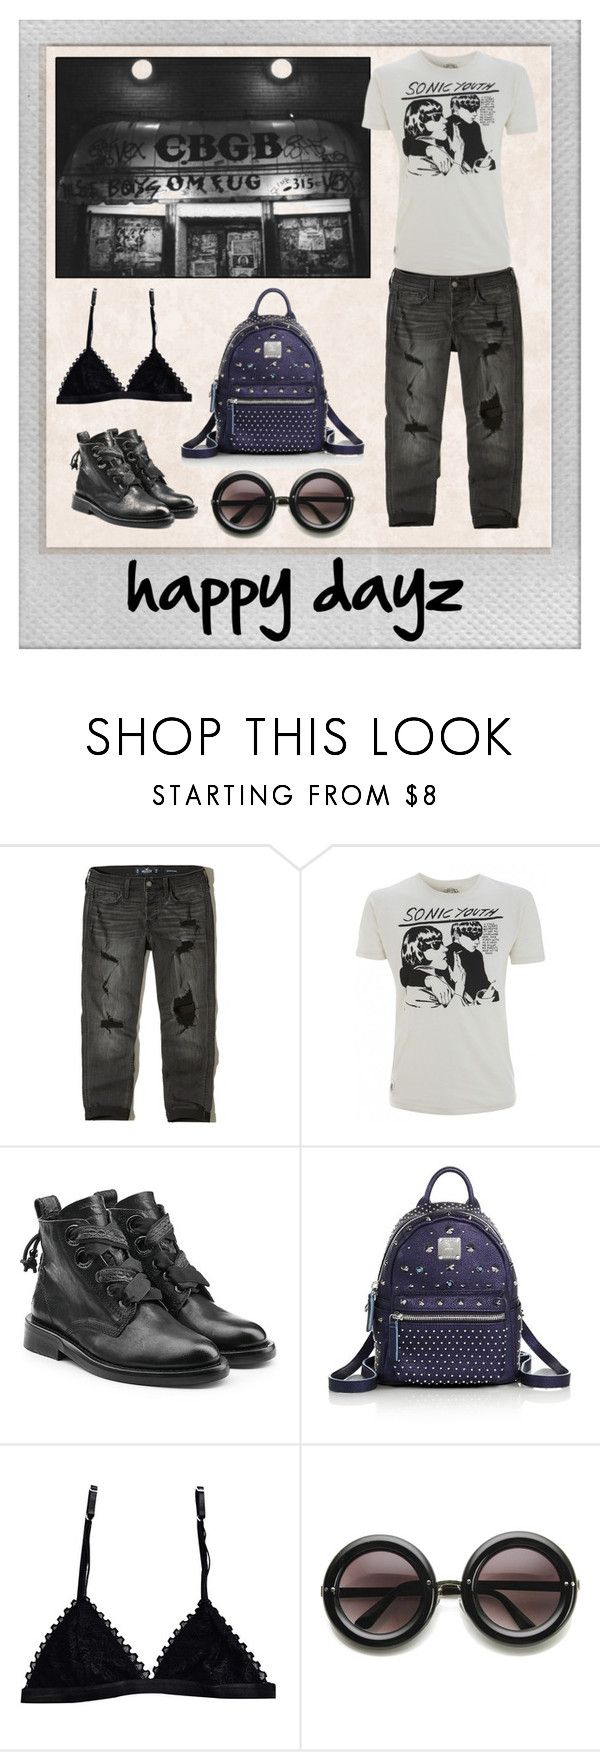 """happy dayz"" by borntobemyself on Polyvore featuring moda, Polaroid, Hollister Co., Zadig & Voltaire, MCM y ZeroUV"